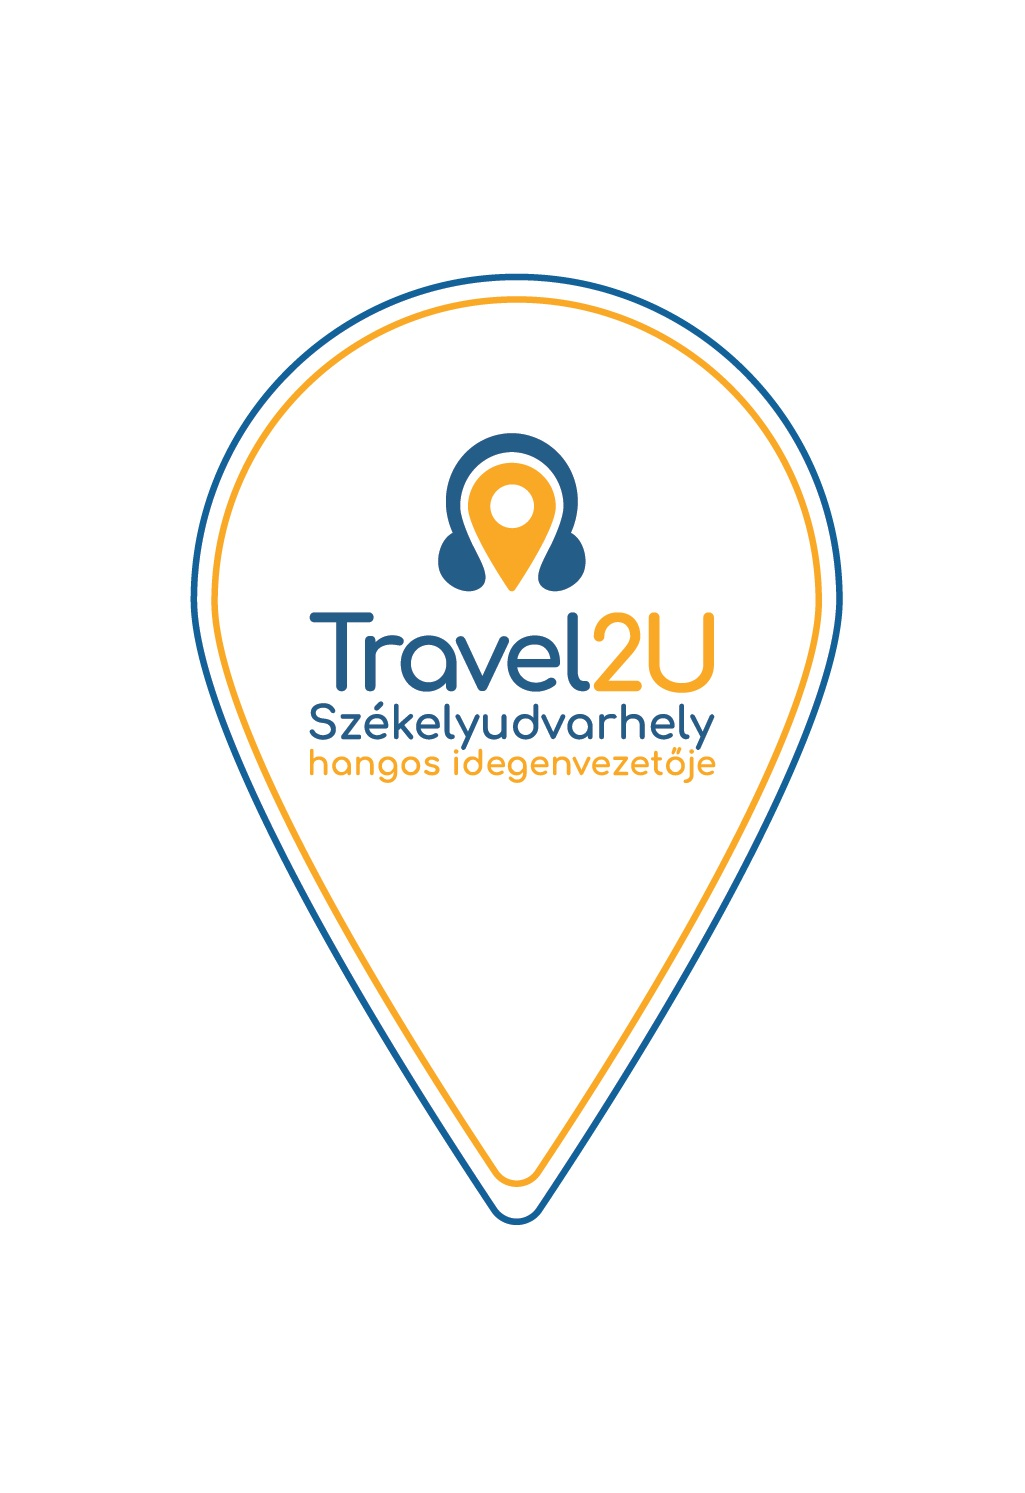 Travel2U – mobile application